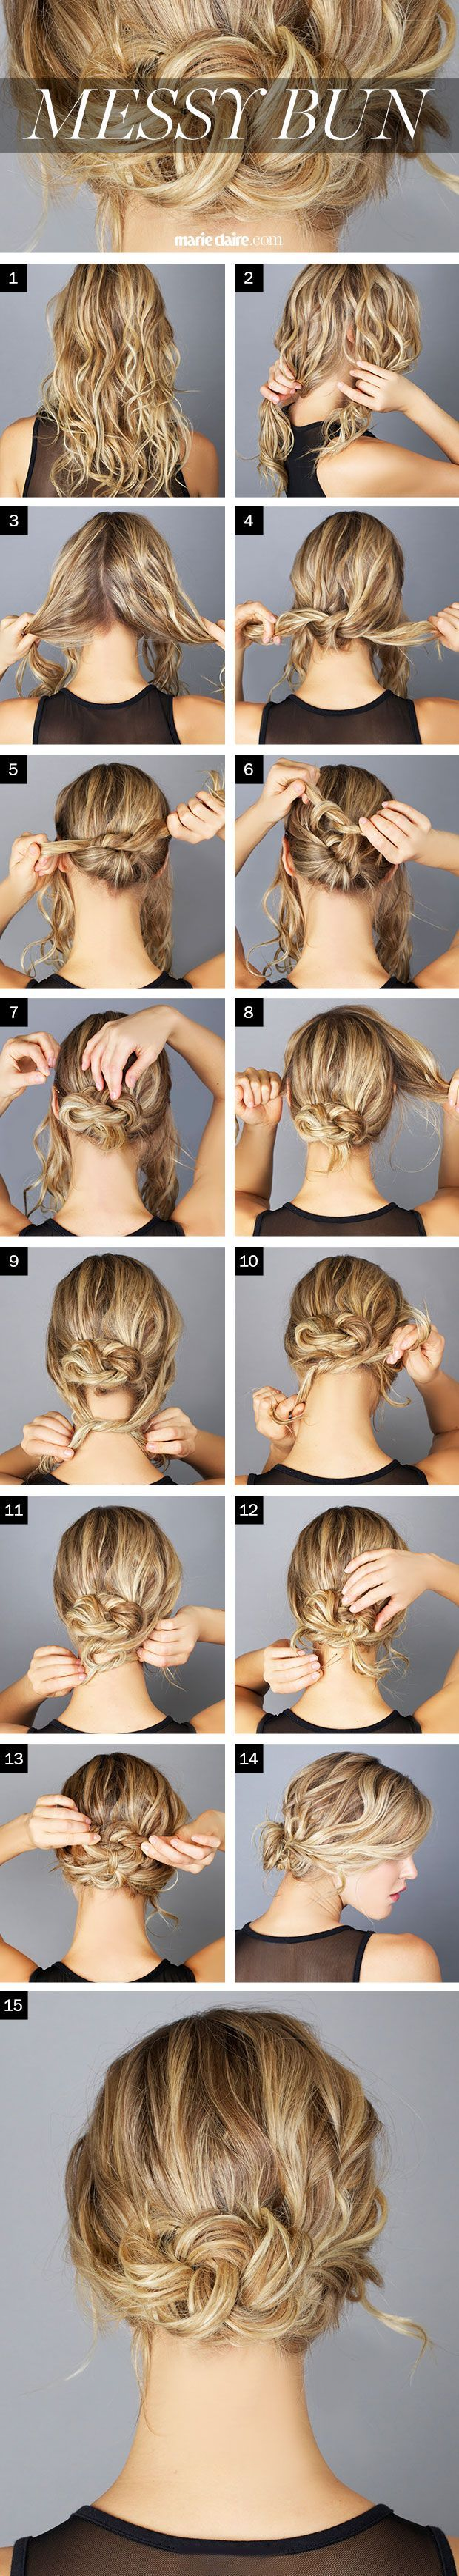 57 best ♥ DIY Hairstyles ♥ images on Pinterest